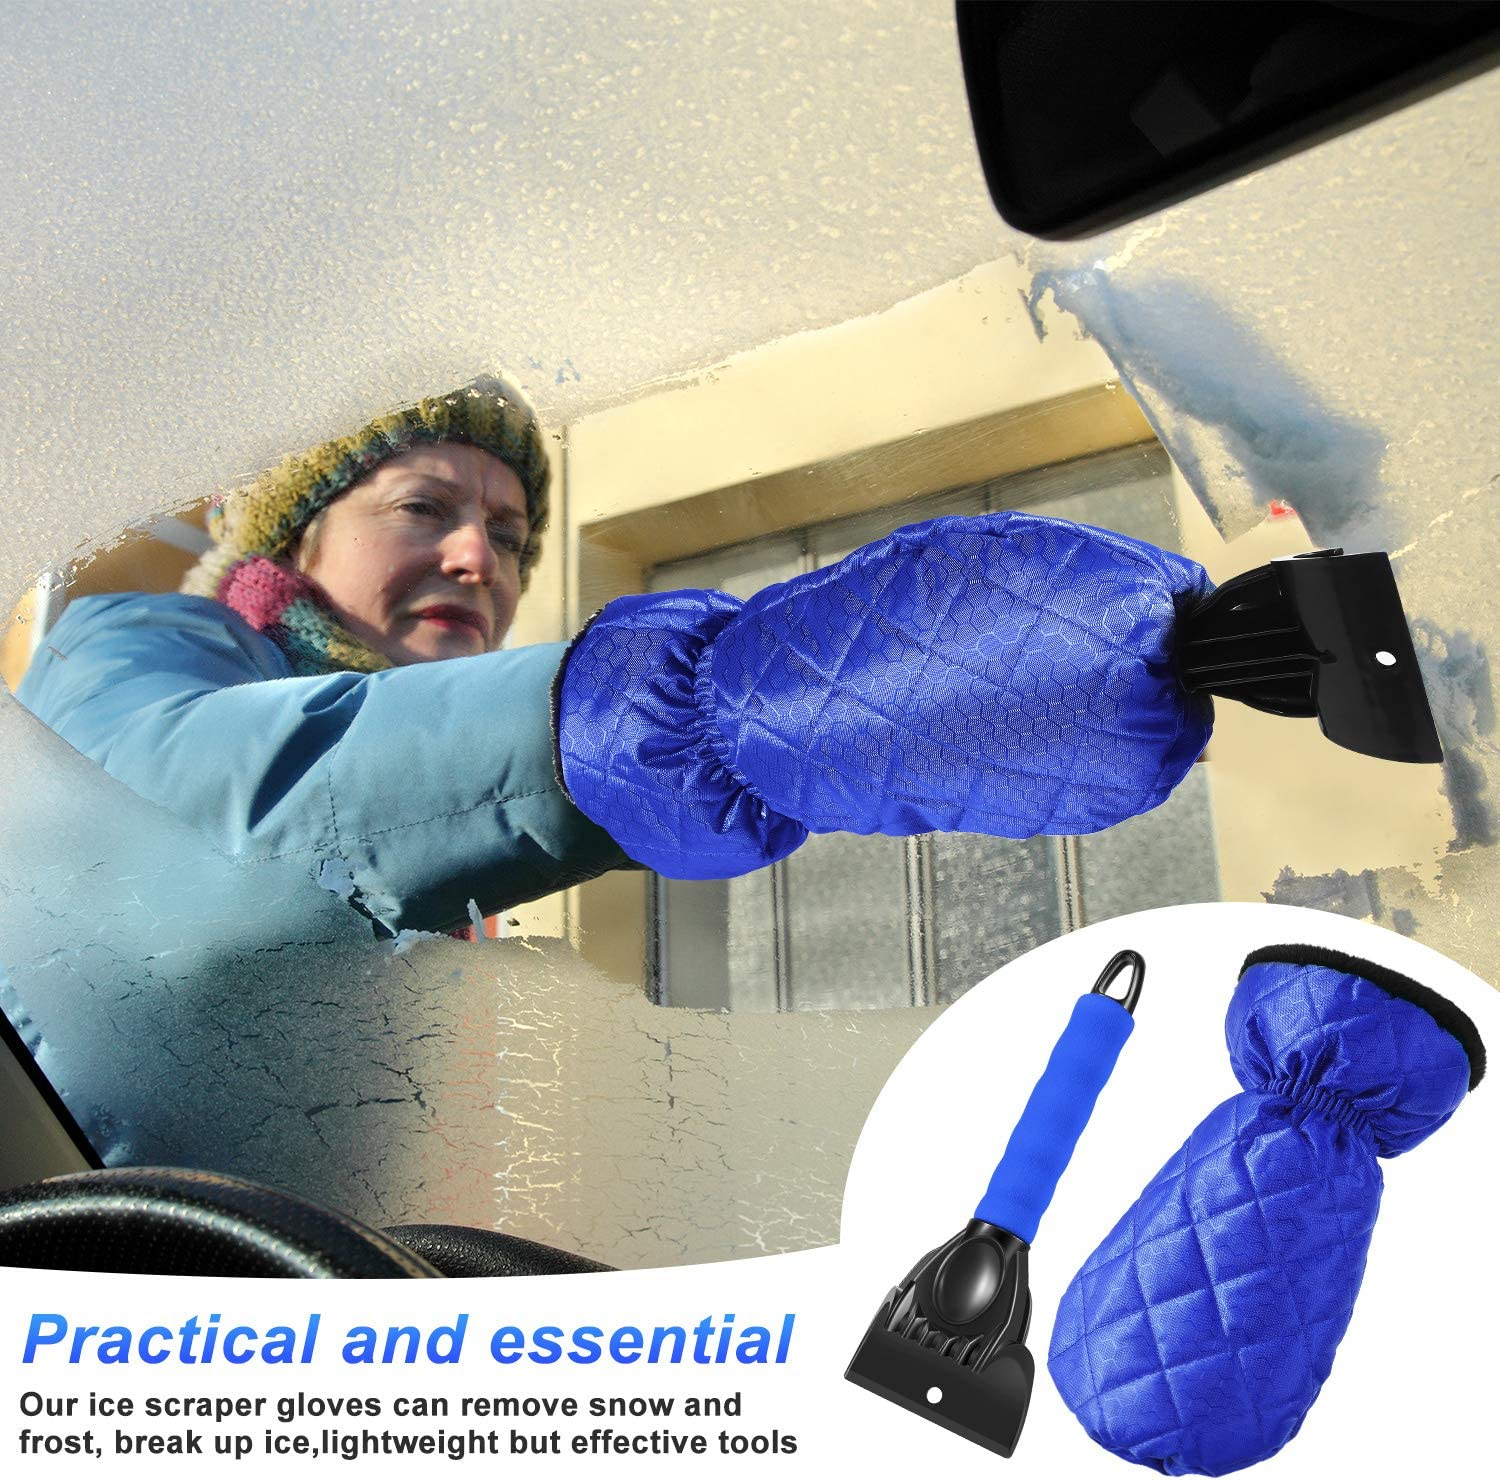 Total 3 Pieces Snow Brush Snow Ice Remover Tools for Car Windshield Snow Frienda Ice Scraper Gloves Windshield Snow Scraper Mitts with Thick Fleece Lined